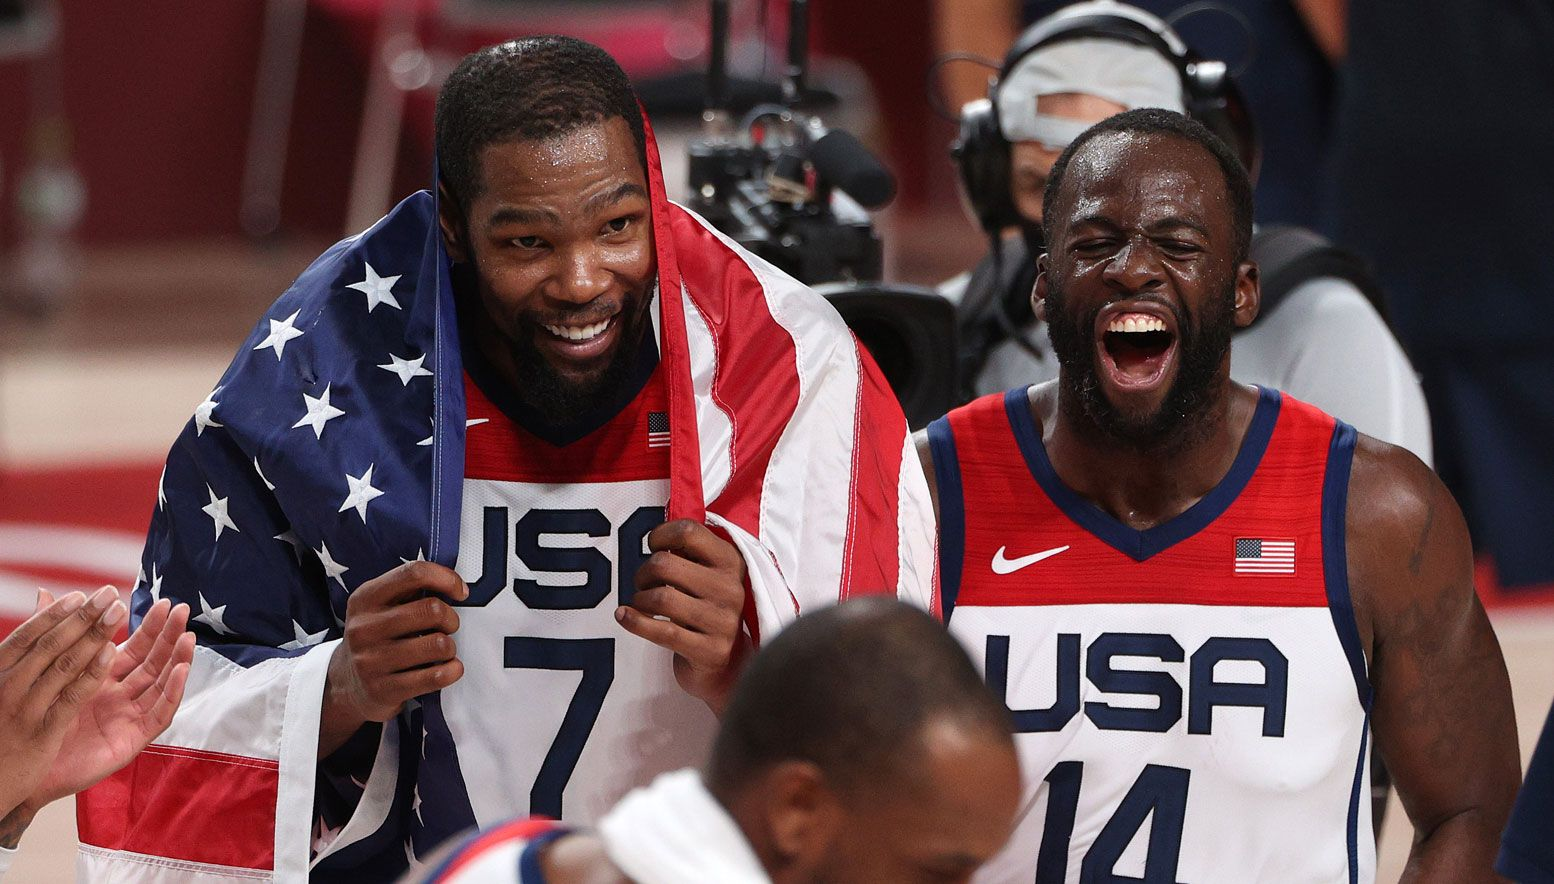 Draymond Green and Kevin Durant celebrating with Team USA